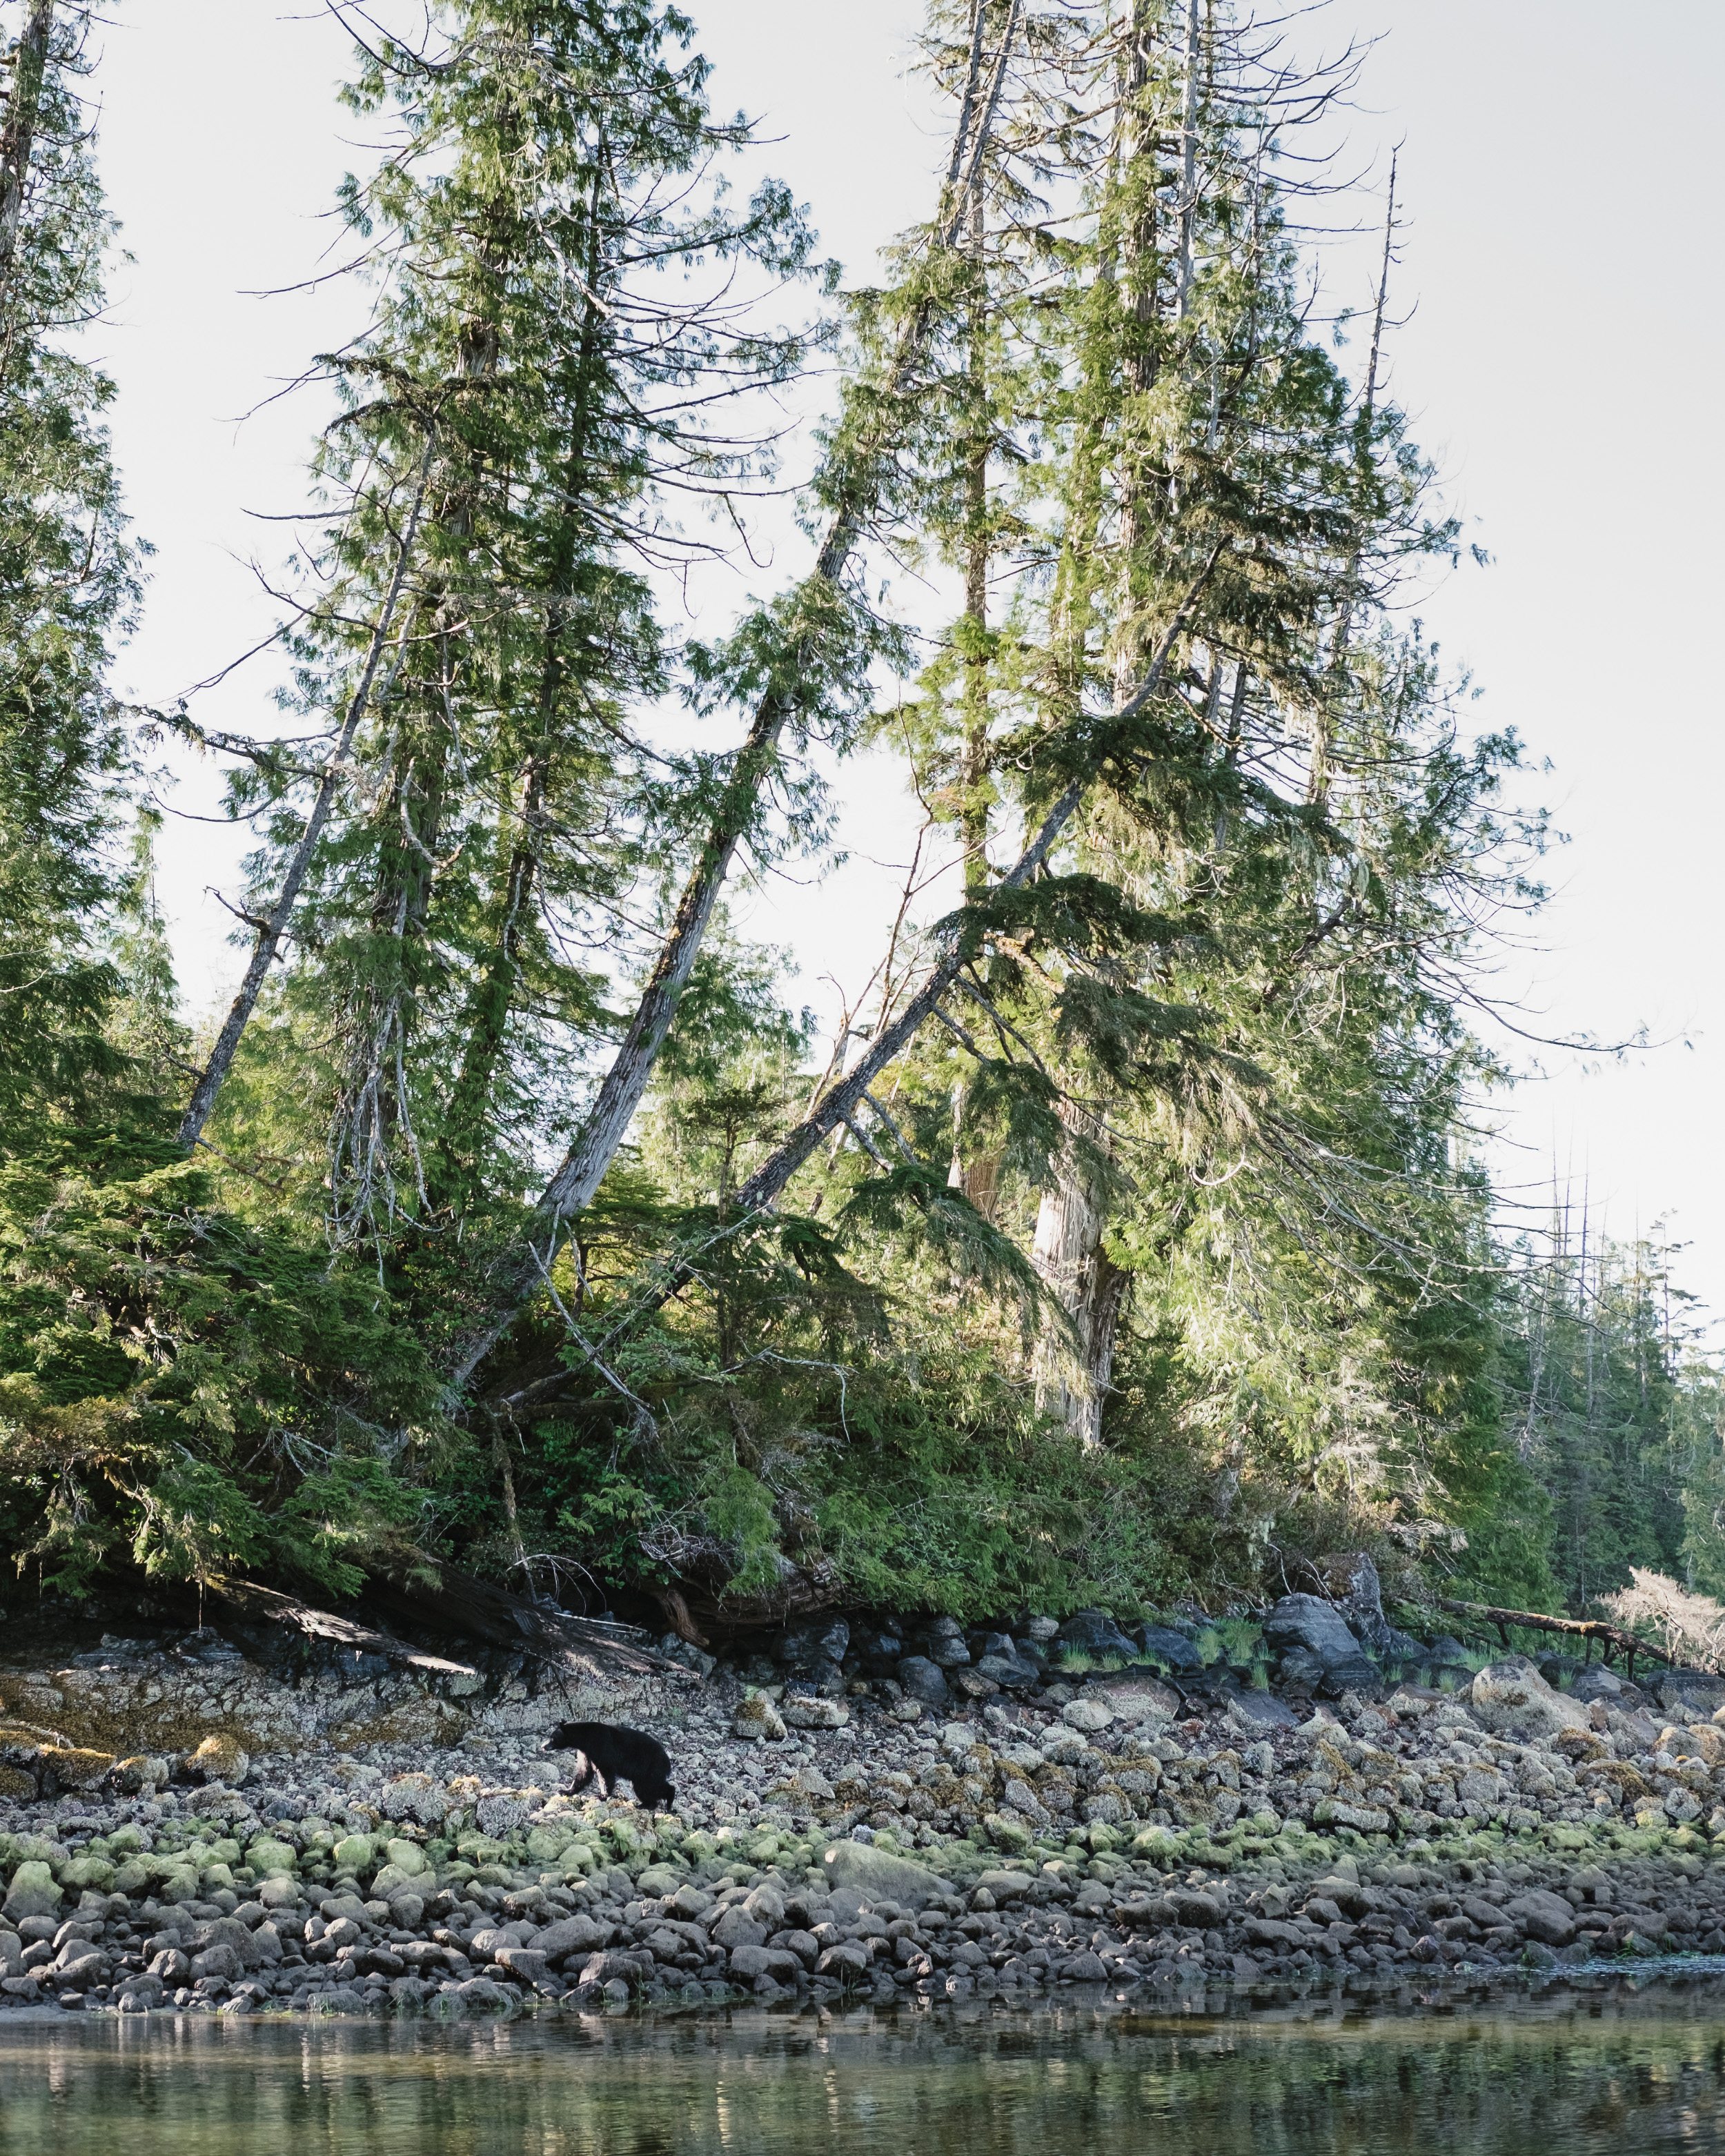 Black bear looking for breakfast on the Clayoquot Sound